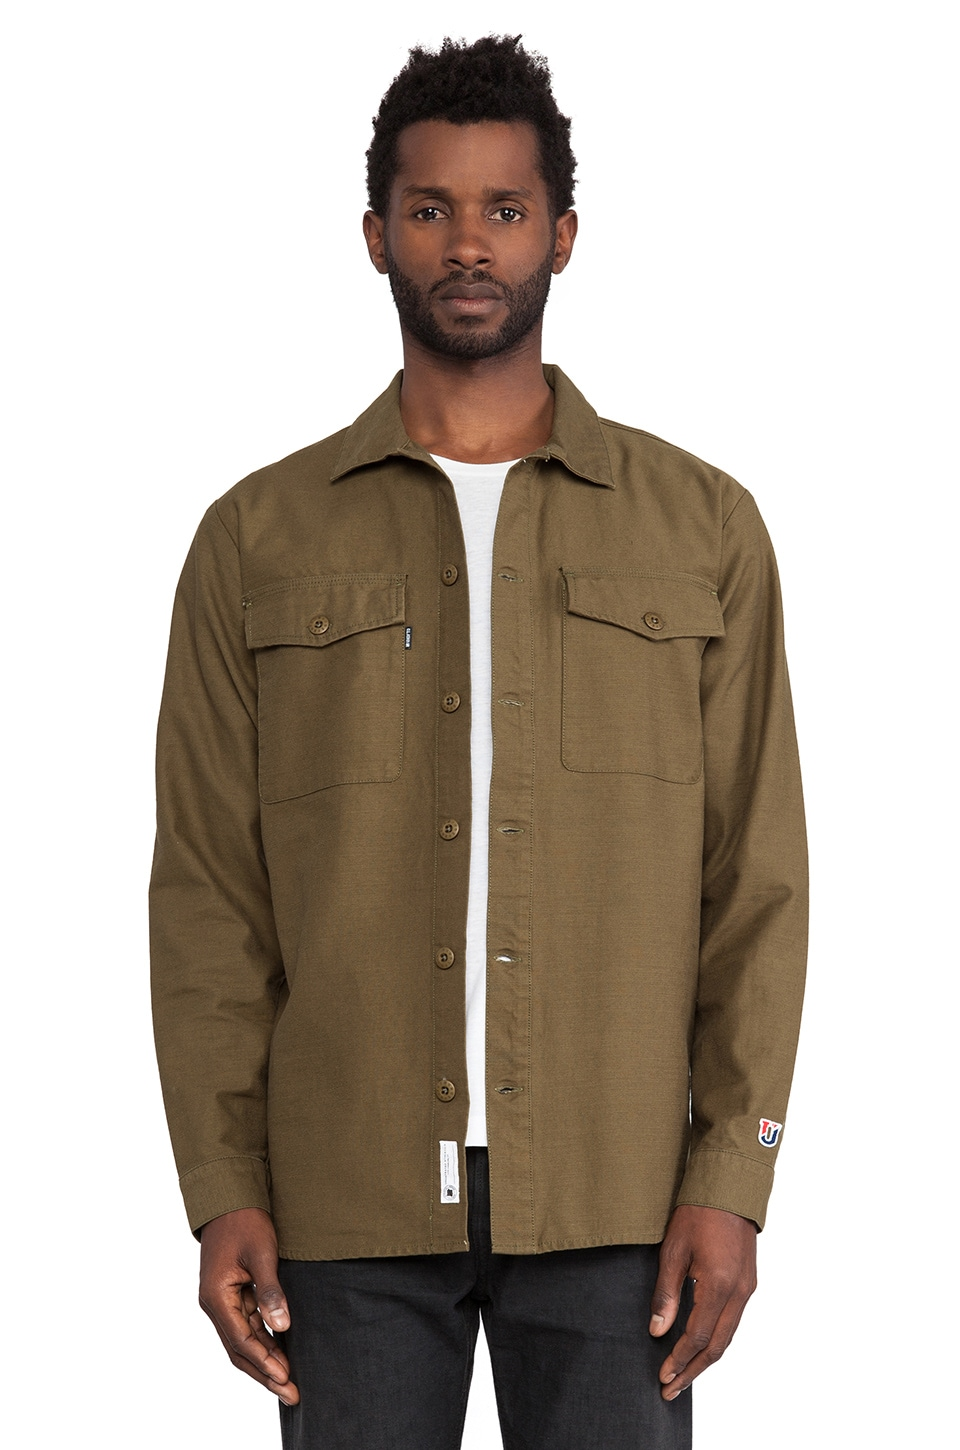 Undefeated BDU Back Button Up in Olive